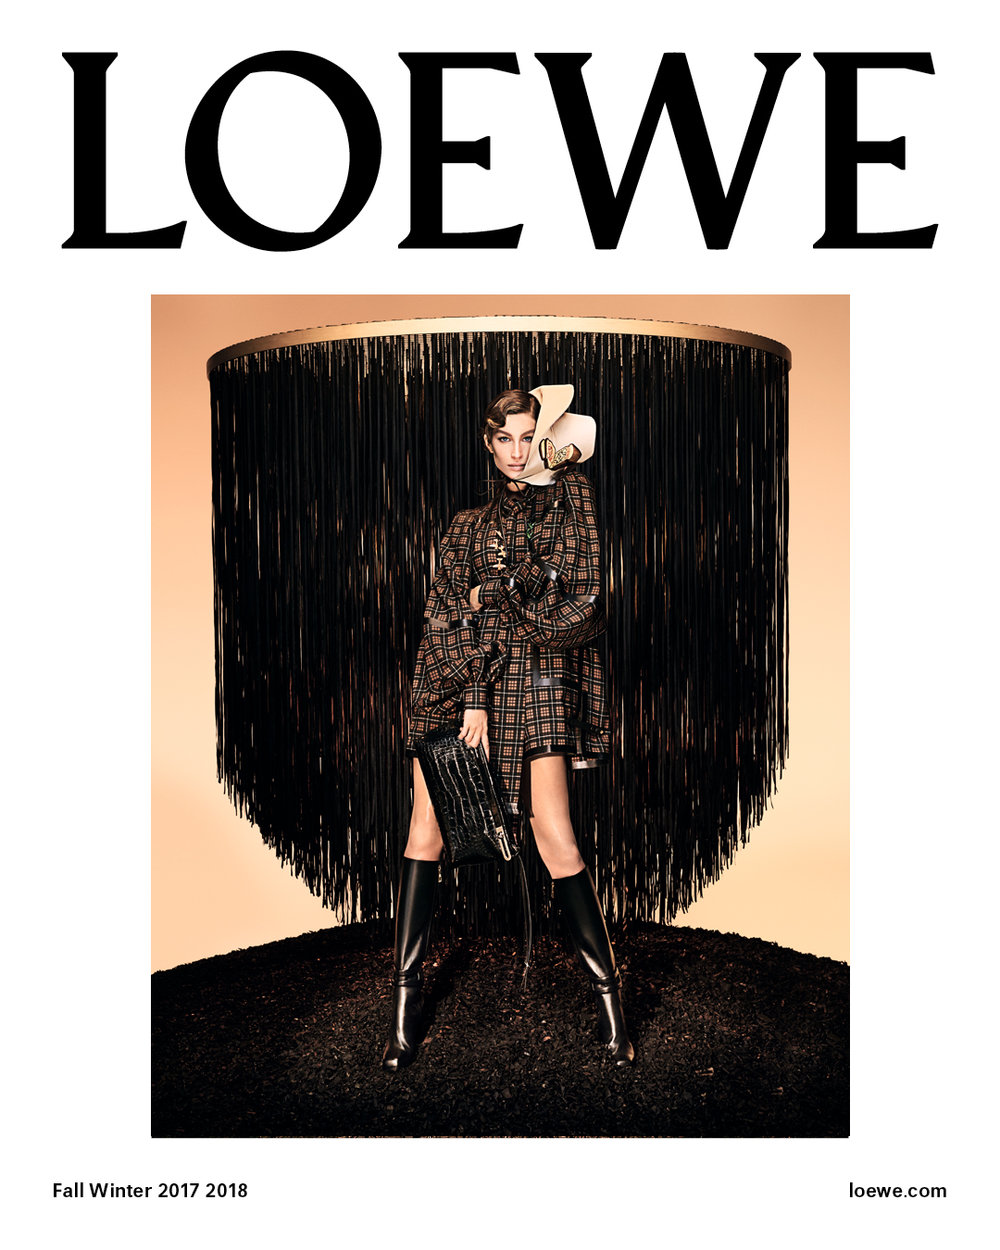 Loewe Campaign Photographed by Steven Meisel, Styled by Benjamin Bruno